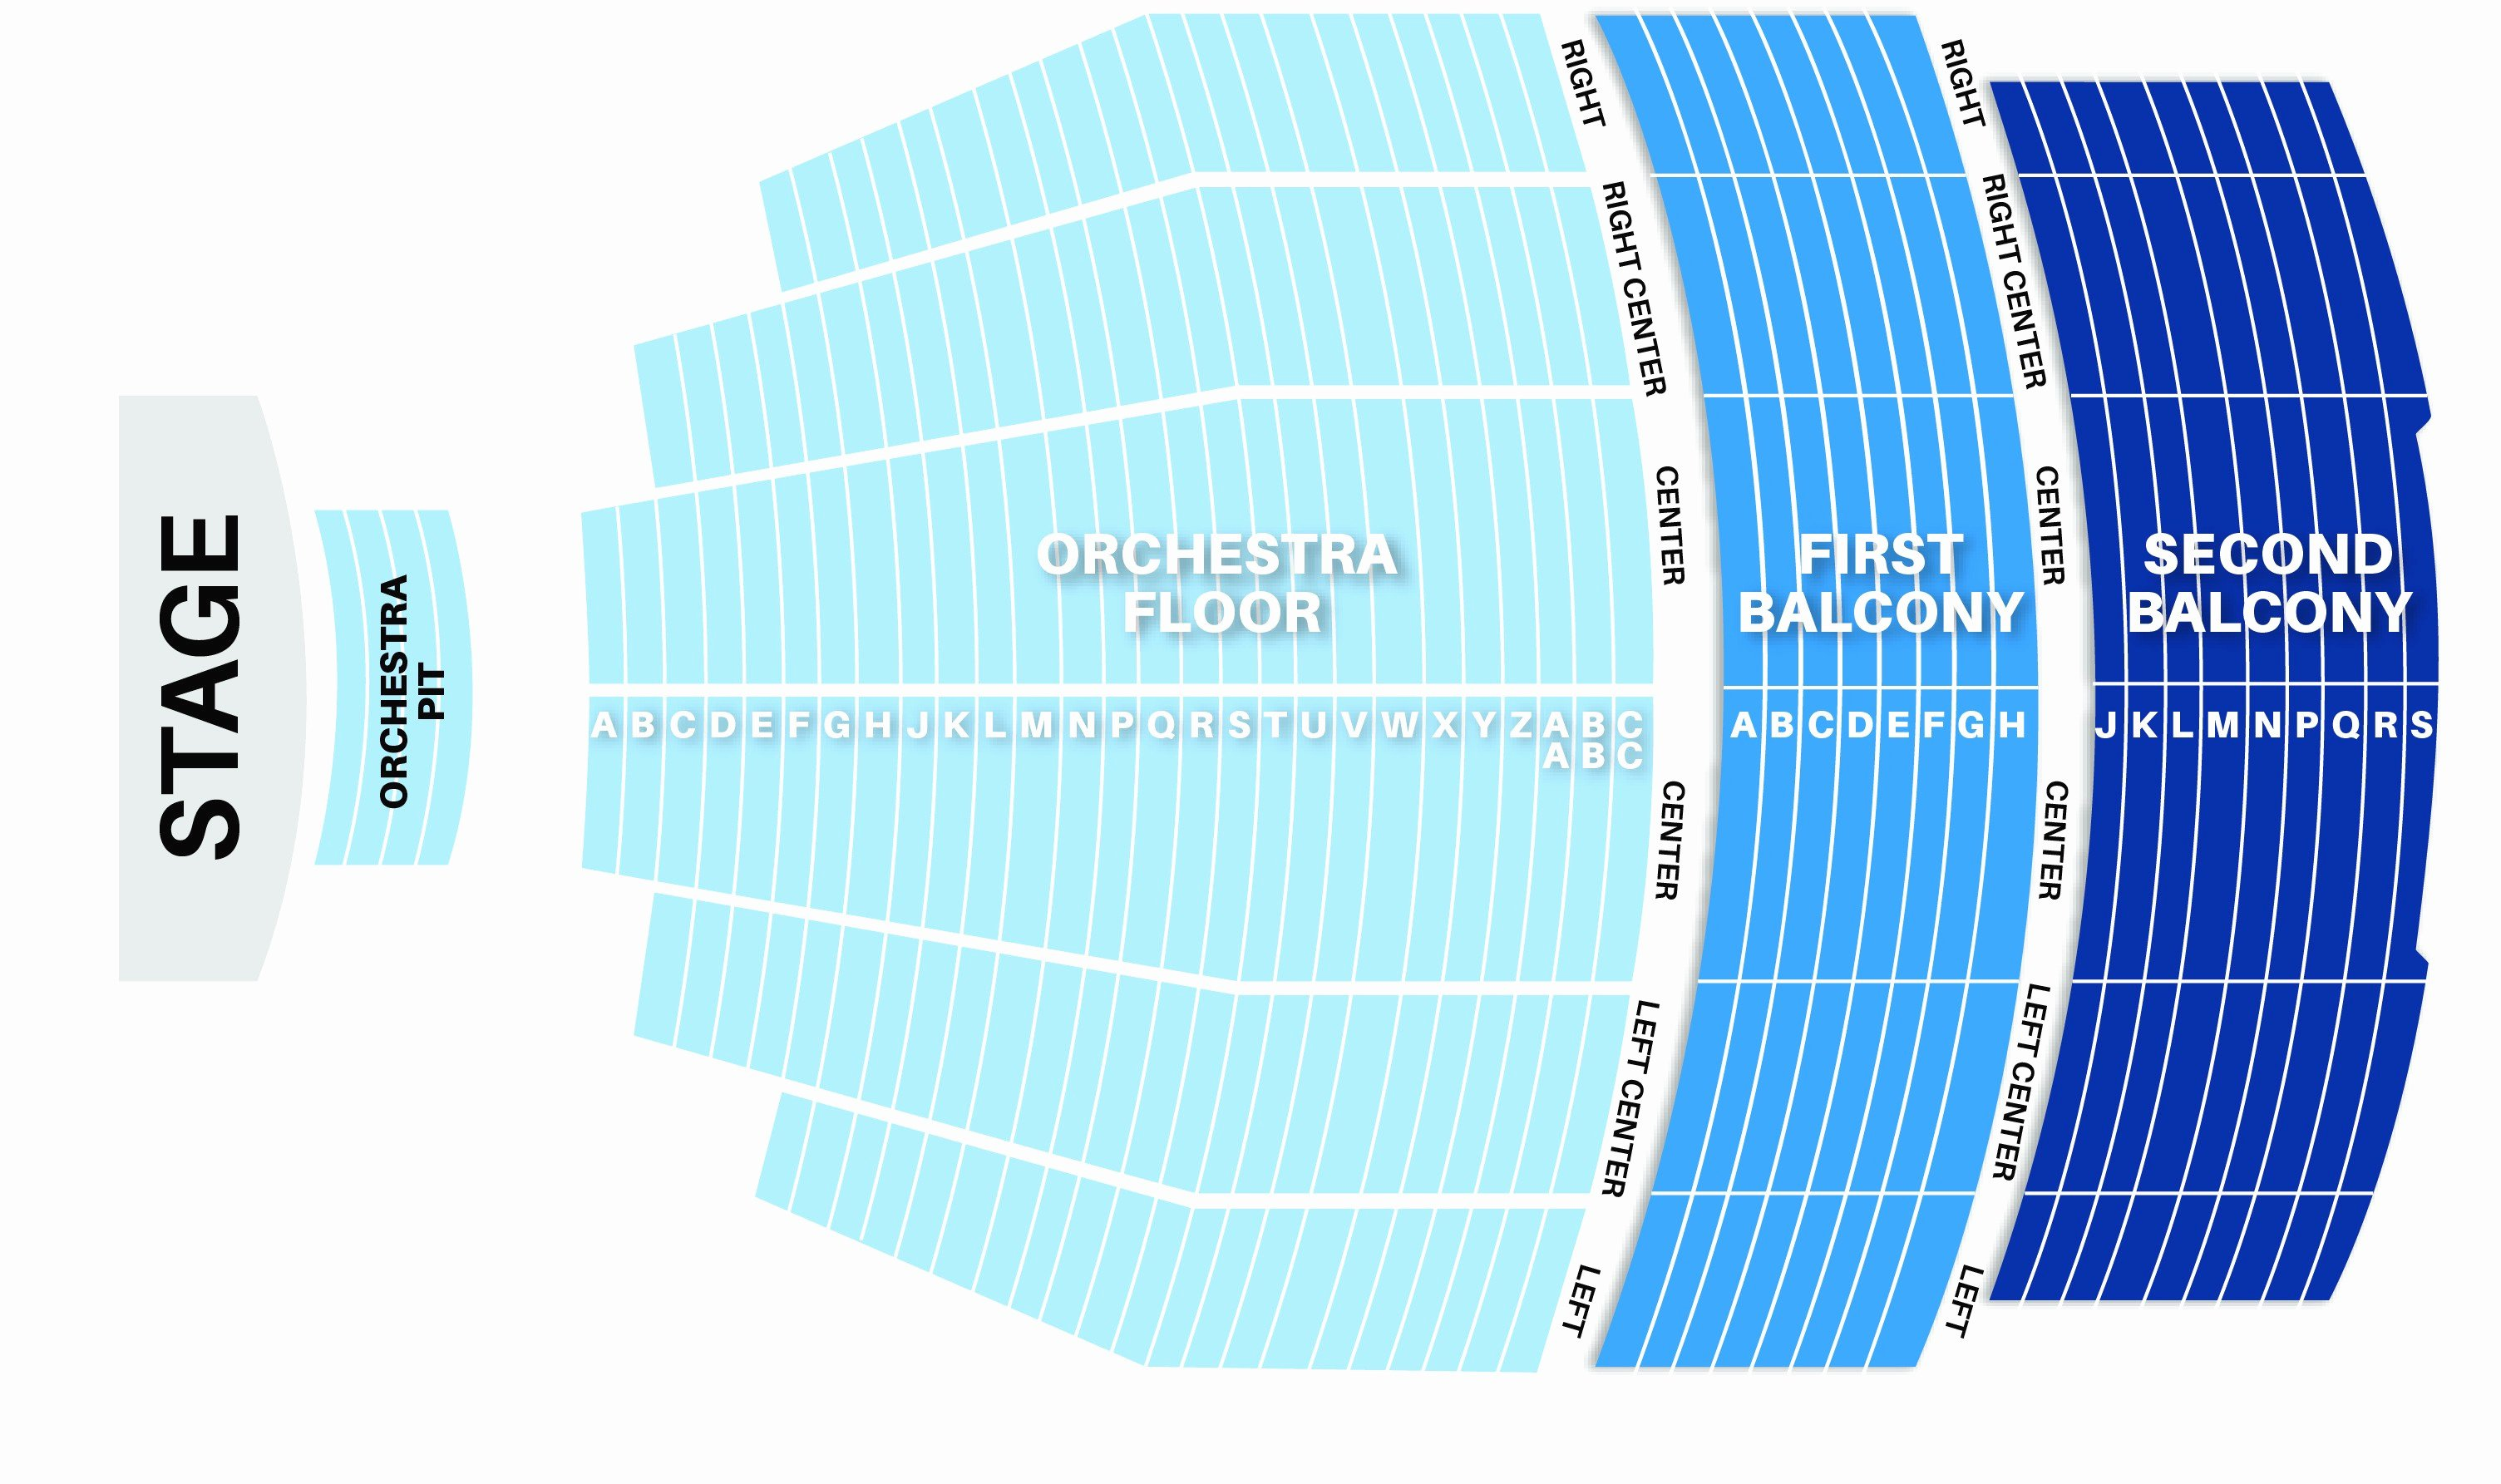 Auditorium Seating Chart Template Best Of Keller Auditorium Seat Map